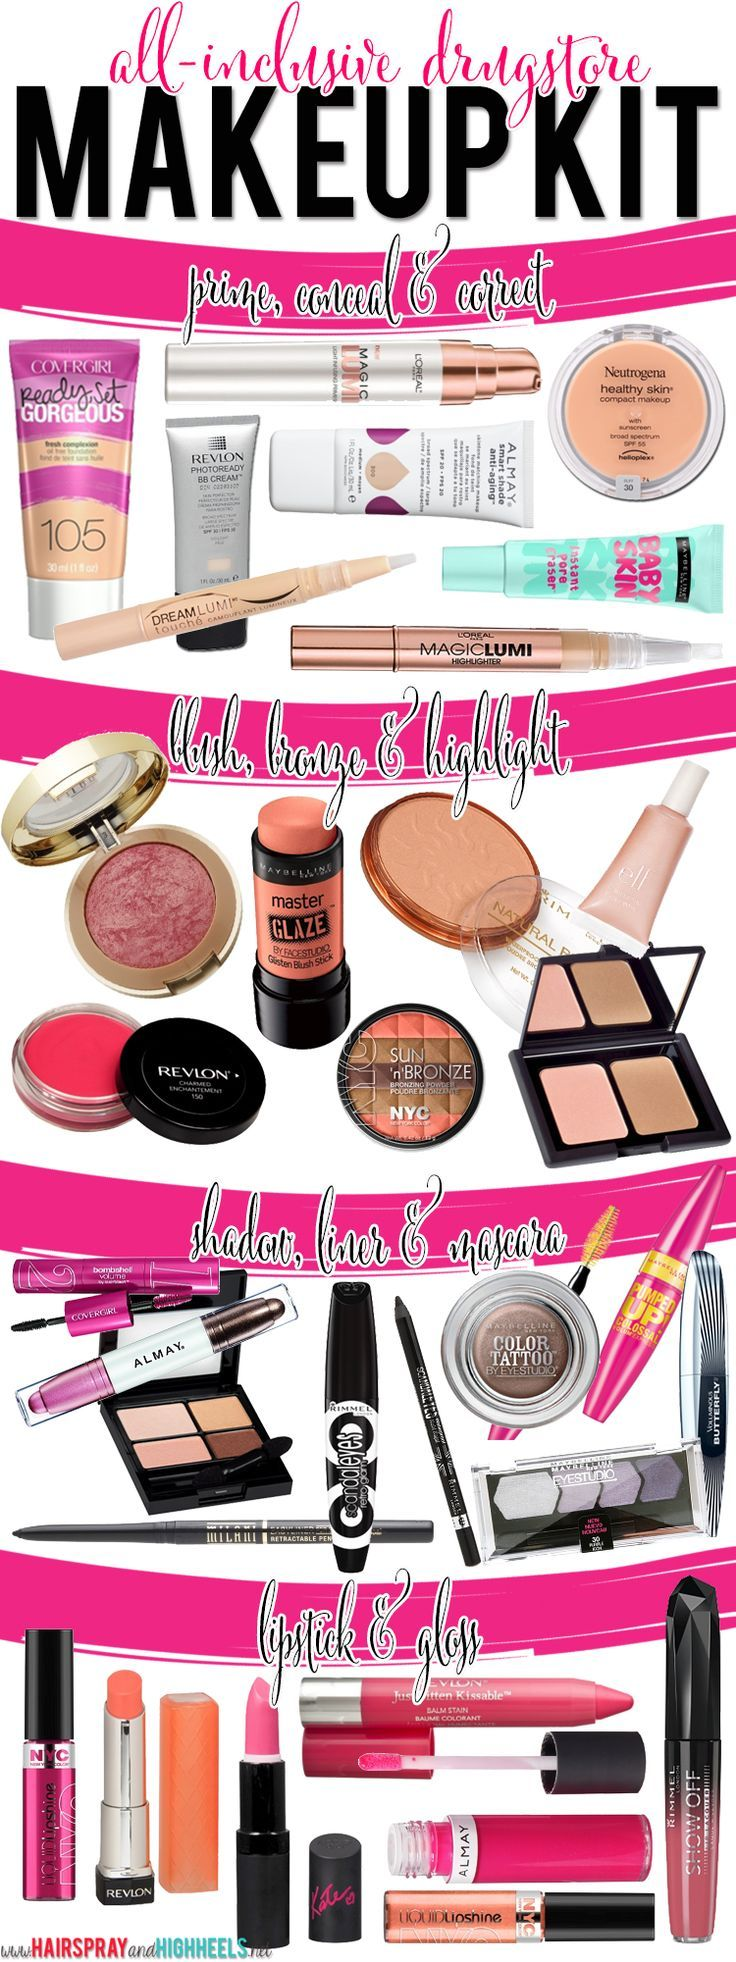 Great Makeup at Awesome Prices